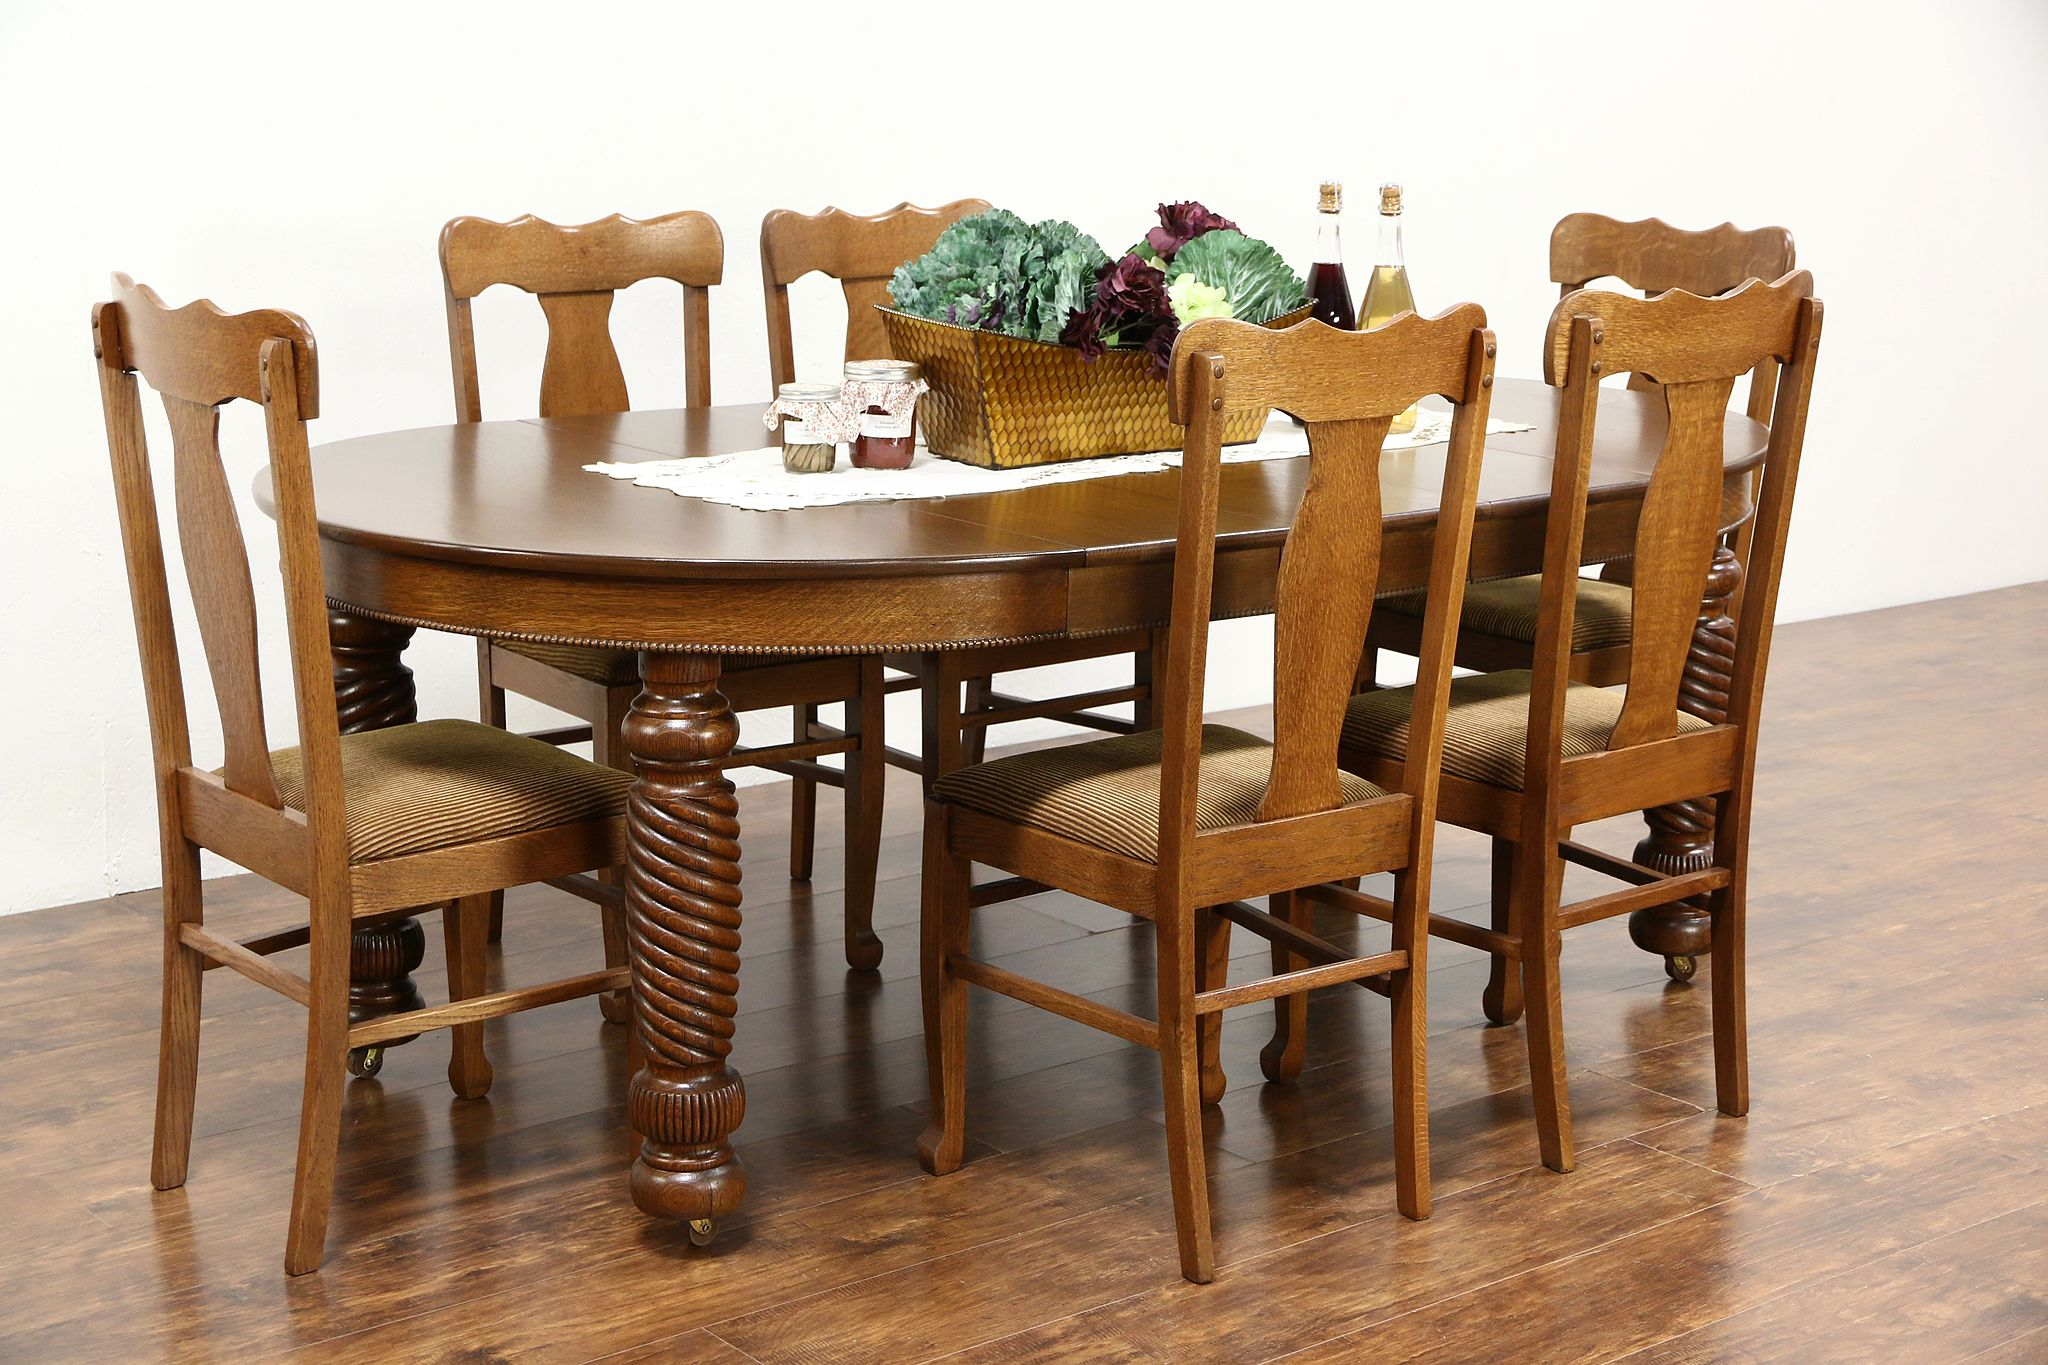 45 Round Oak Antique 1900 Dining Table 3 Leaves